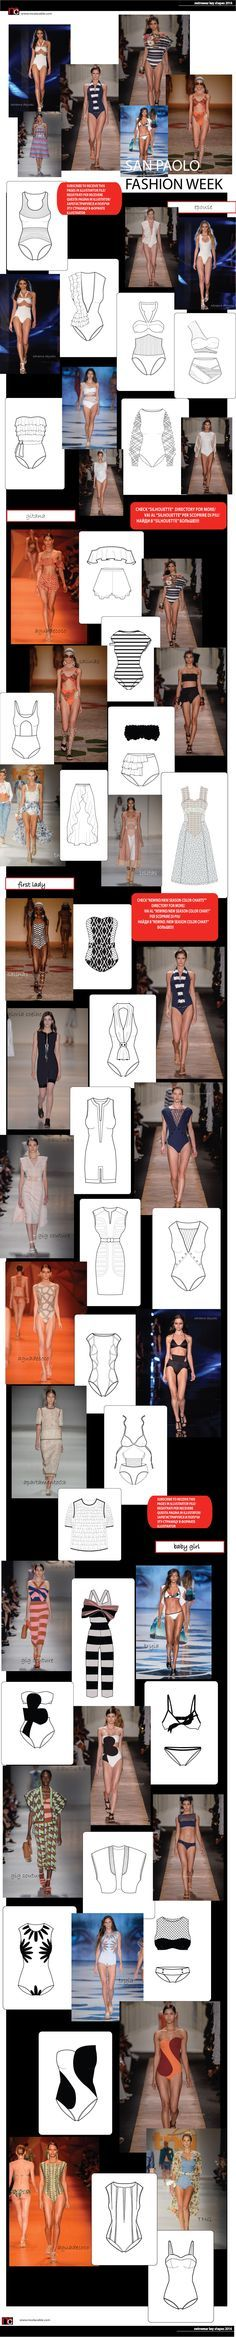 key shapes swimwear SS2016 only at www.modacable.com join us and get free access to our vector folder on Dropbox with all the fashion flats, colors, mood boards and etc